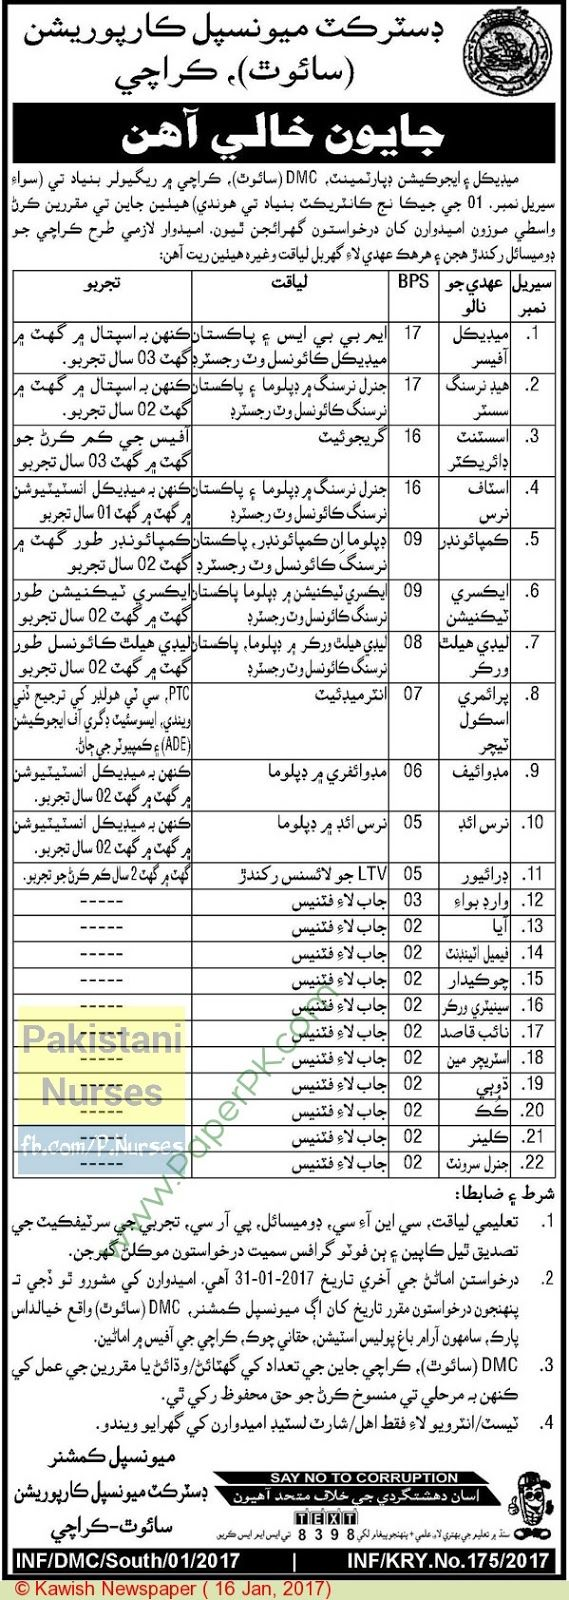 Head nurses bps 17 without bscn staff nurses bps 16 only with 1 year